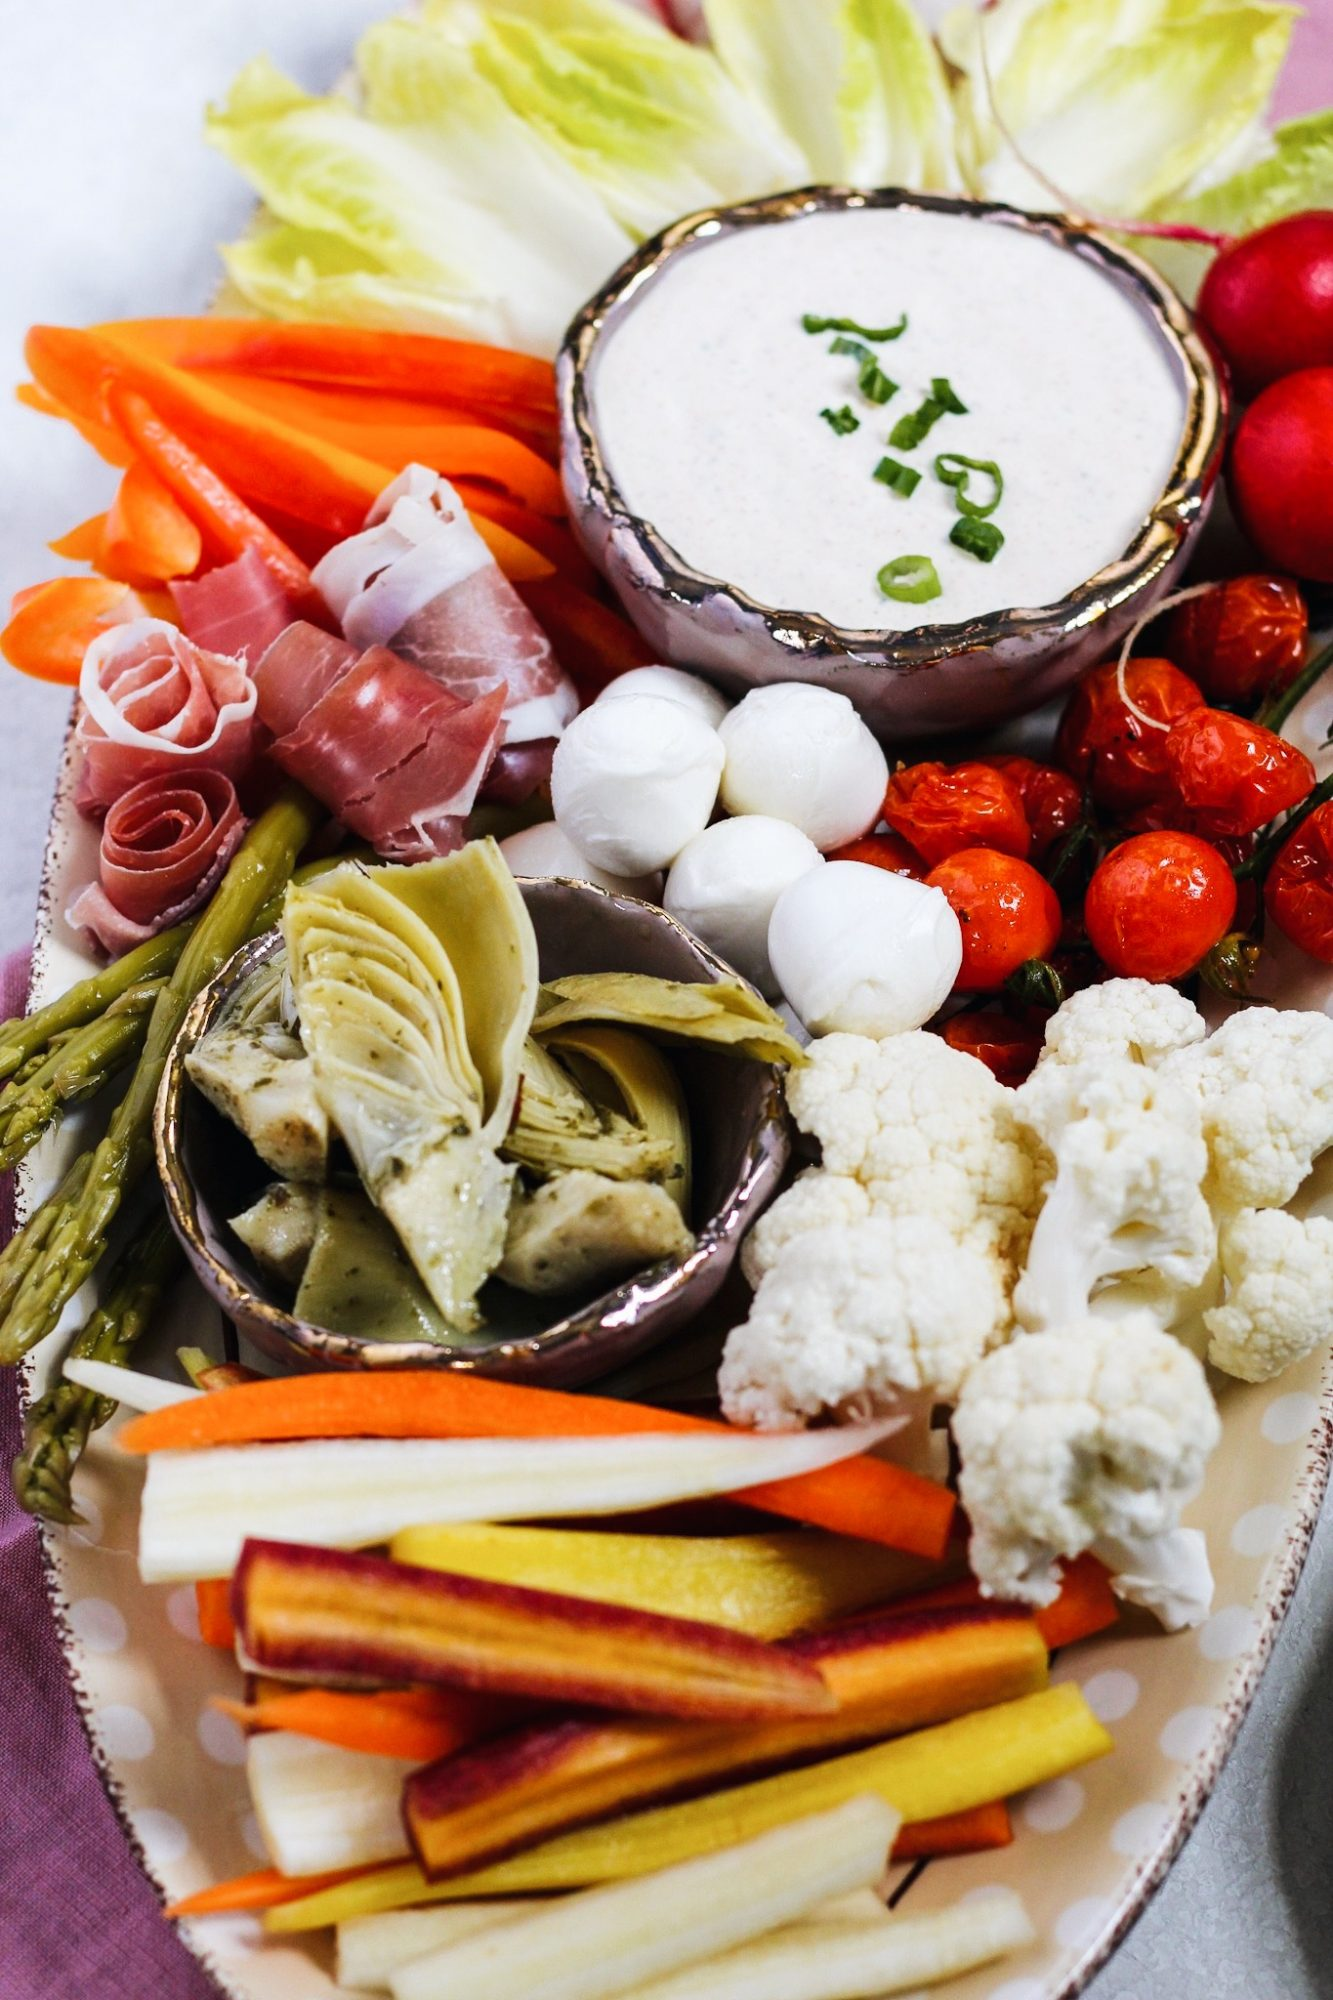 How to make a crudités platter for a crowd